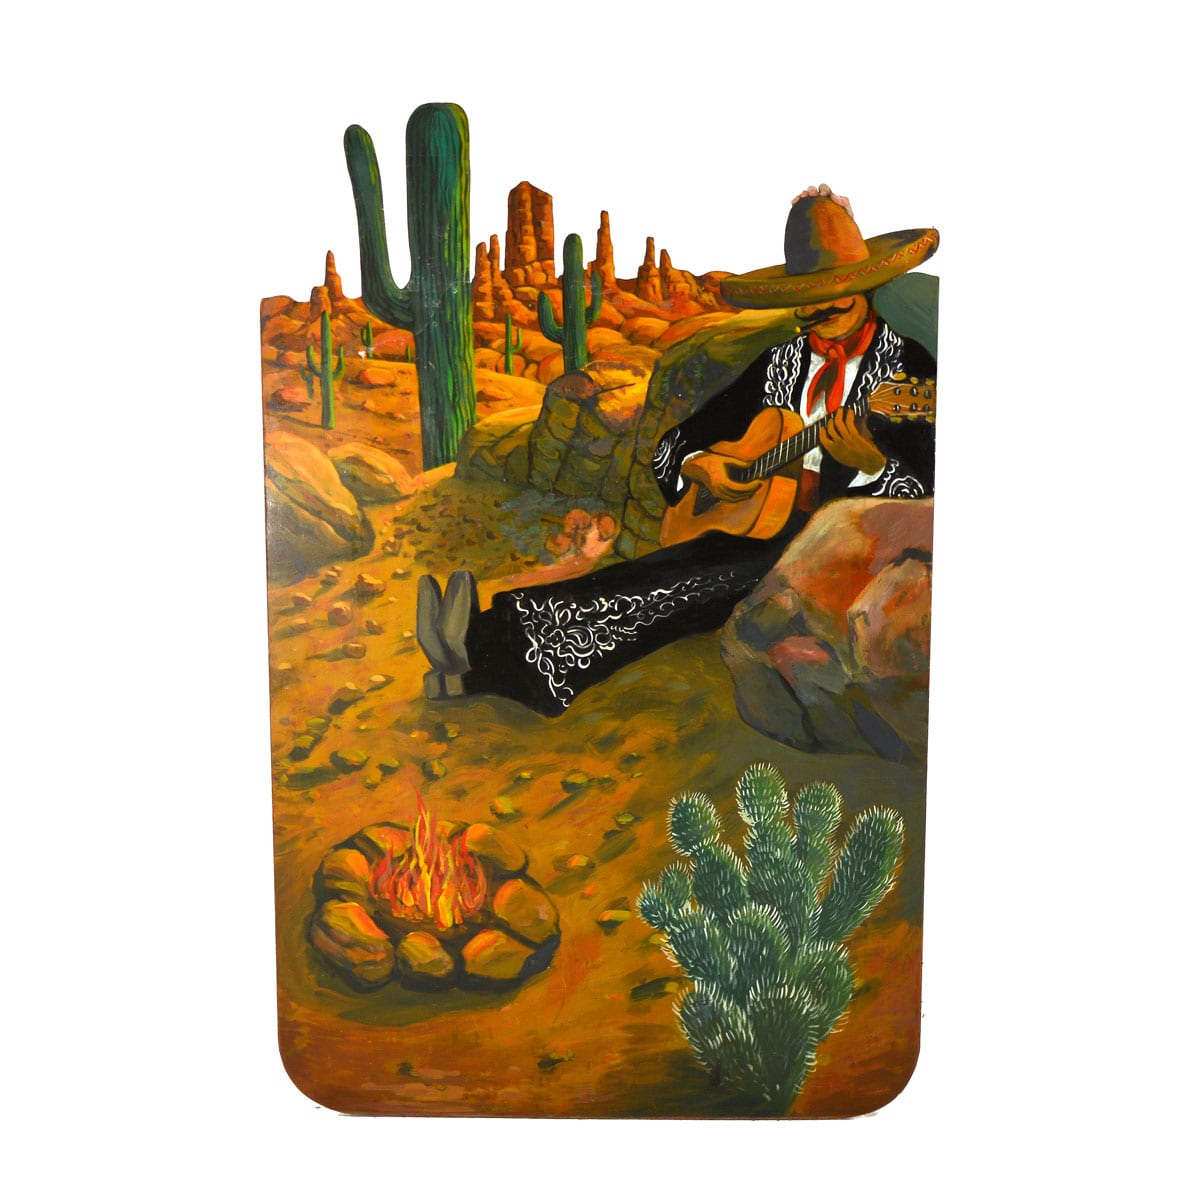 Cutout – Mexican with Guitar